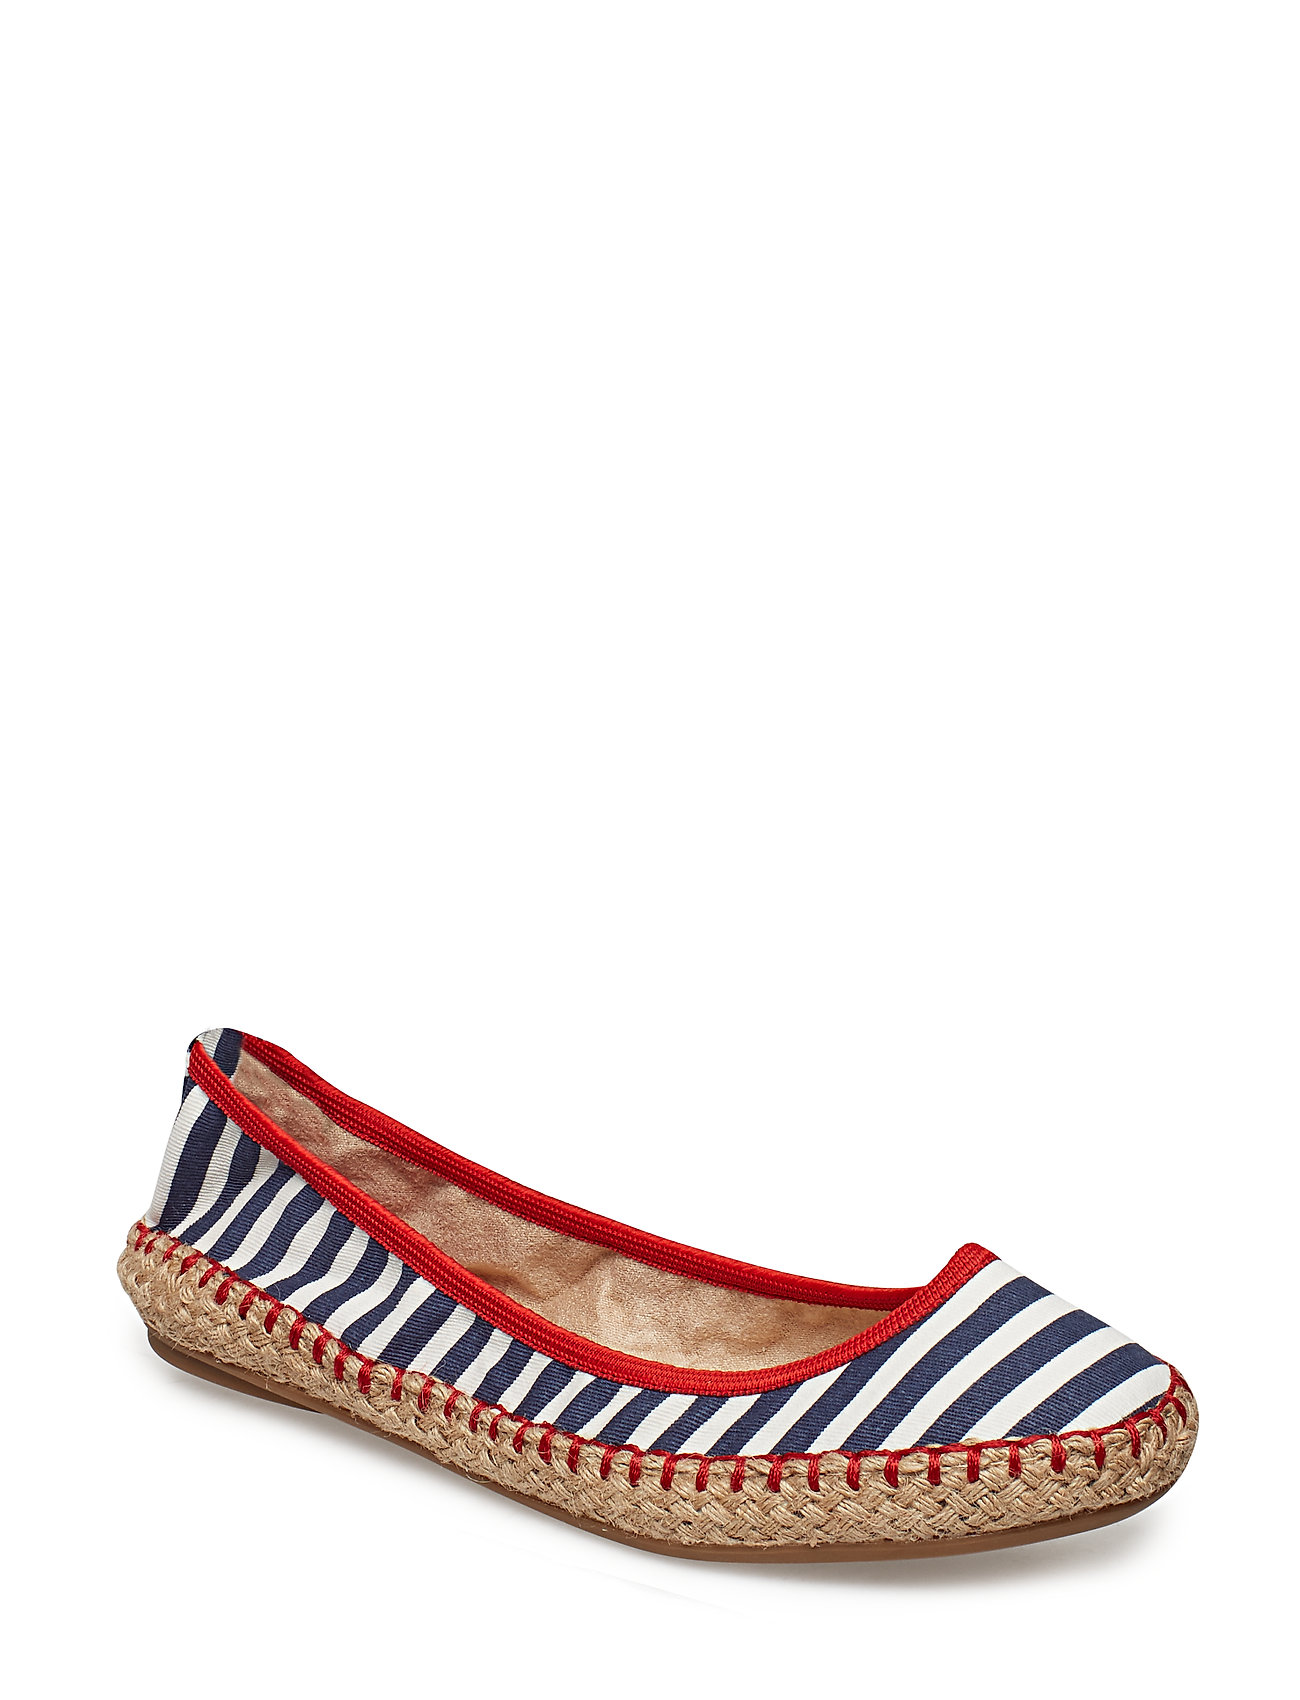 Butterfly Twists GIGI - NAVY/WHITE STRIPE